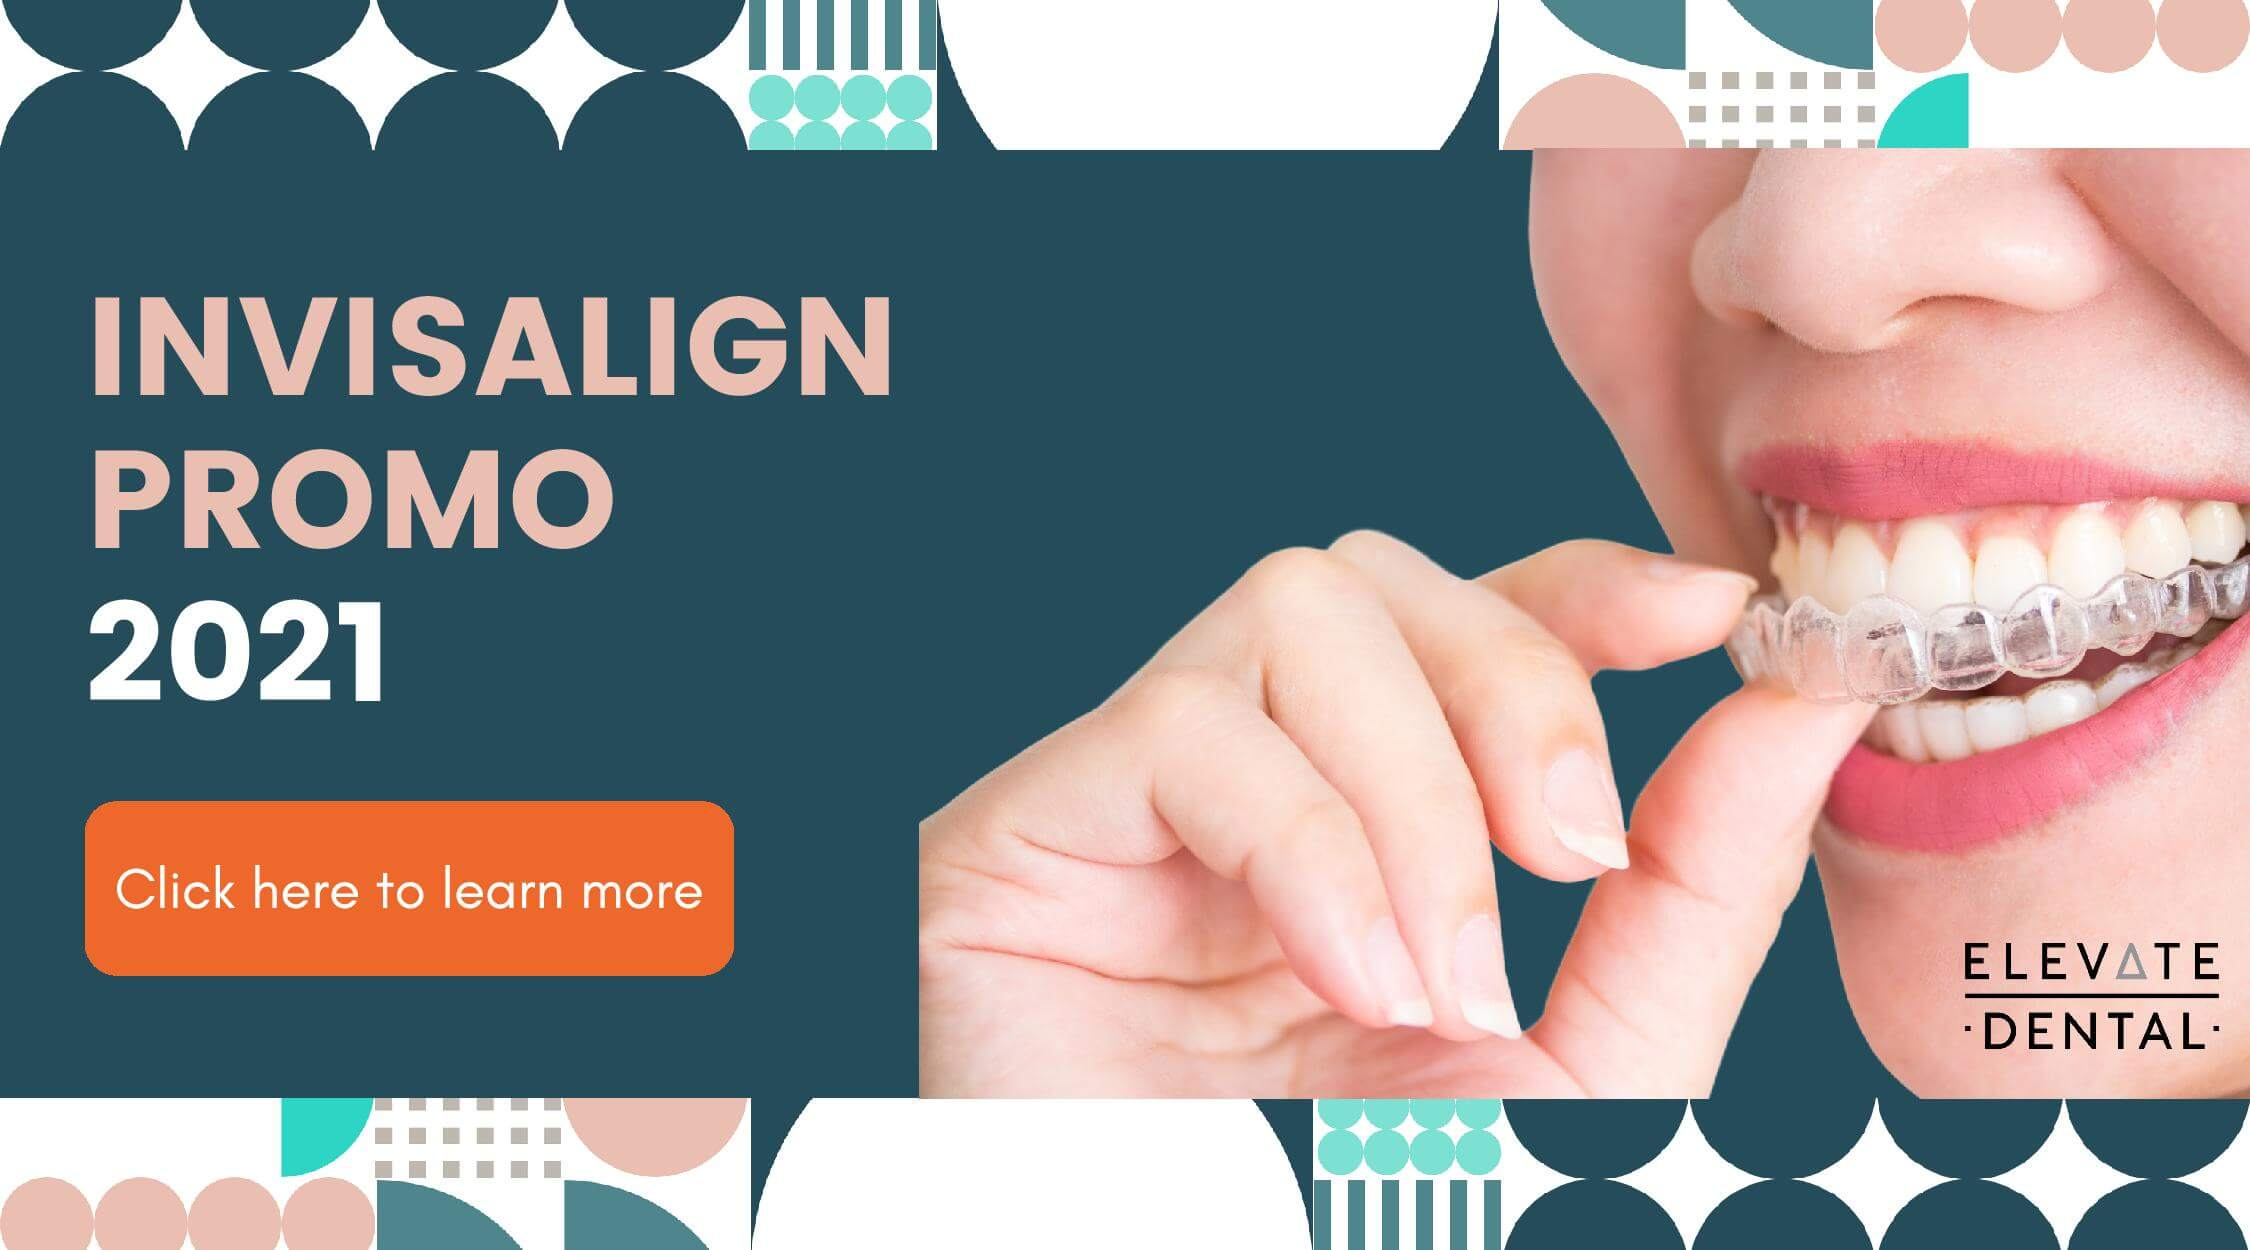 Elevate Dental Invisalign Promo